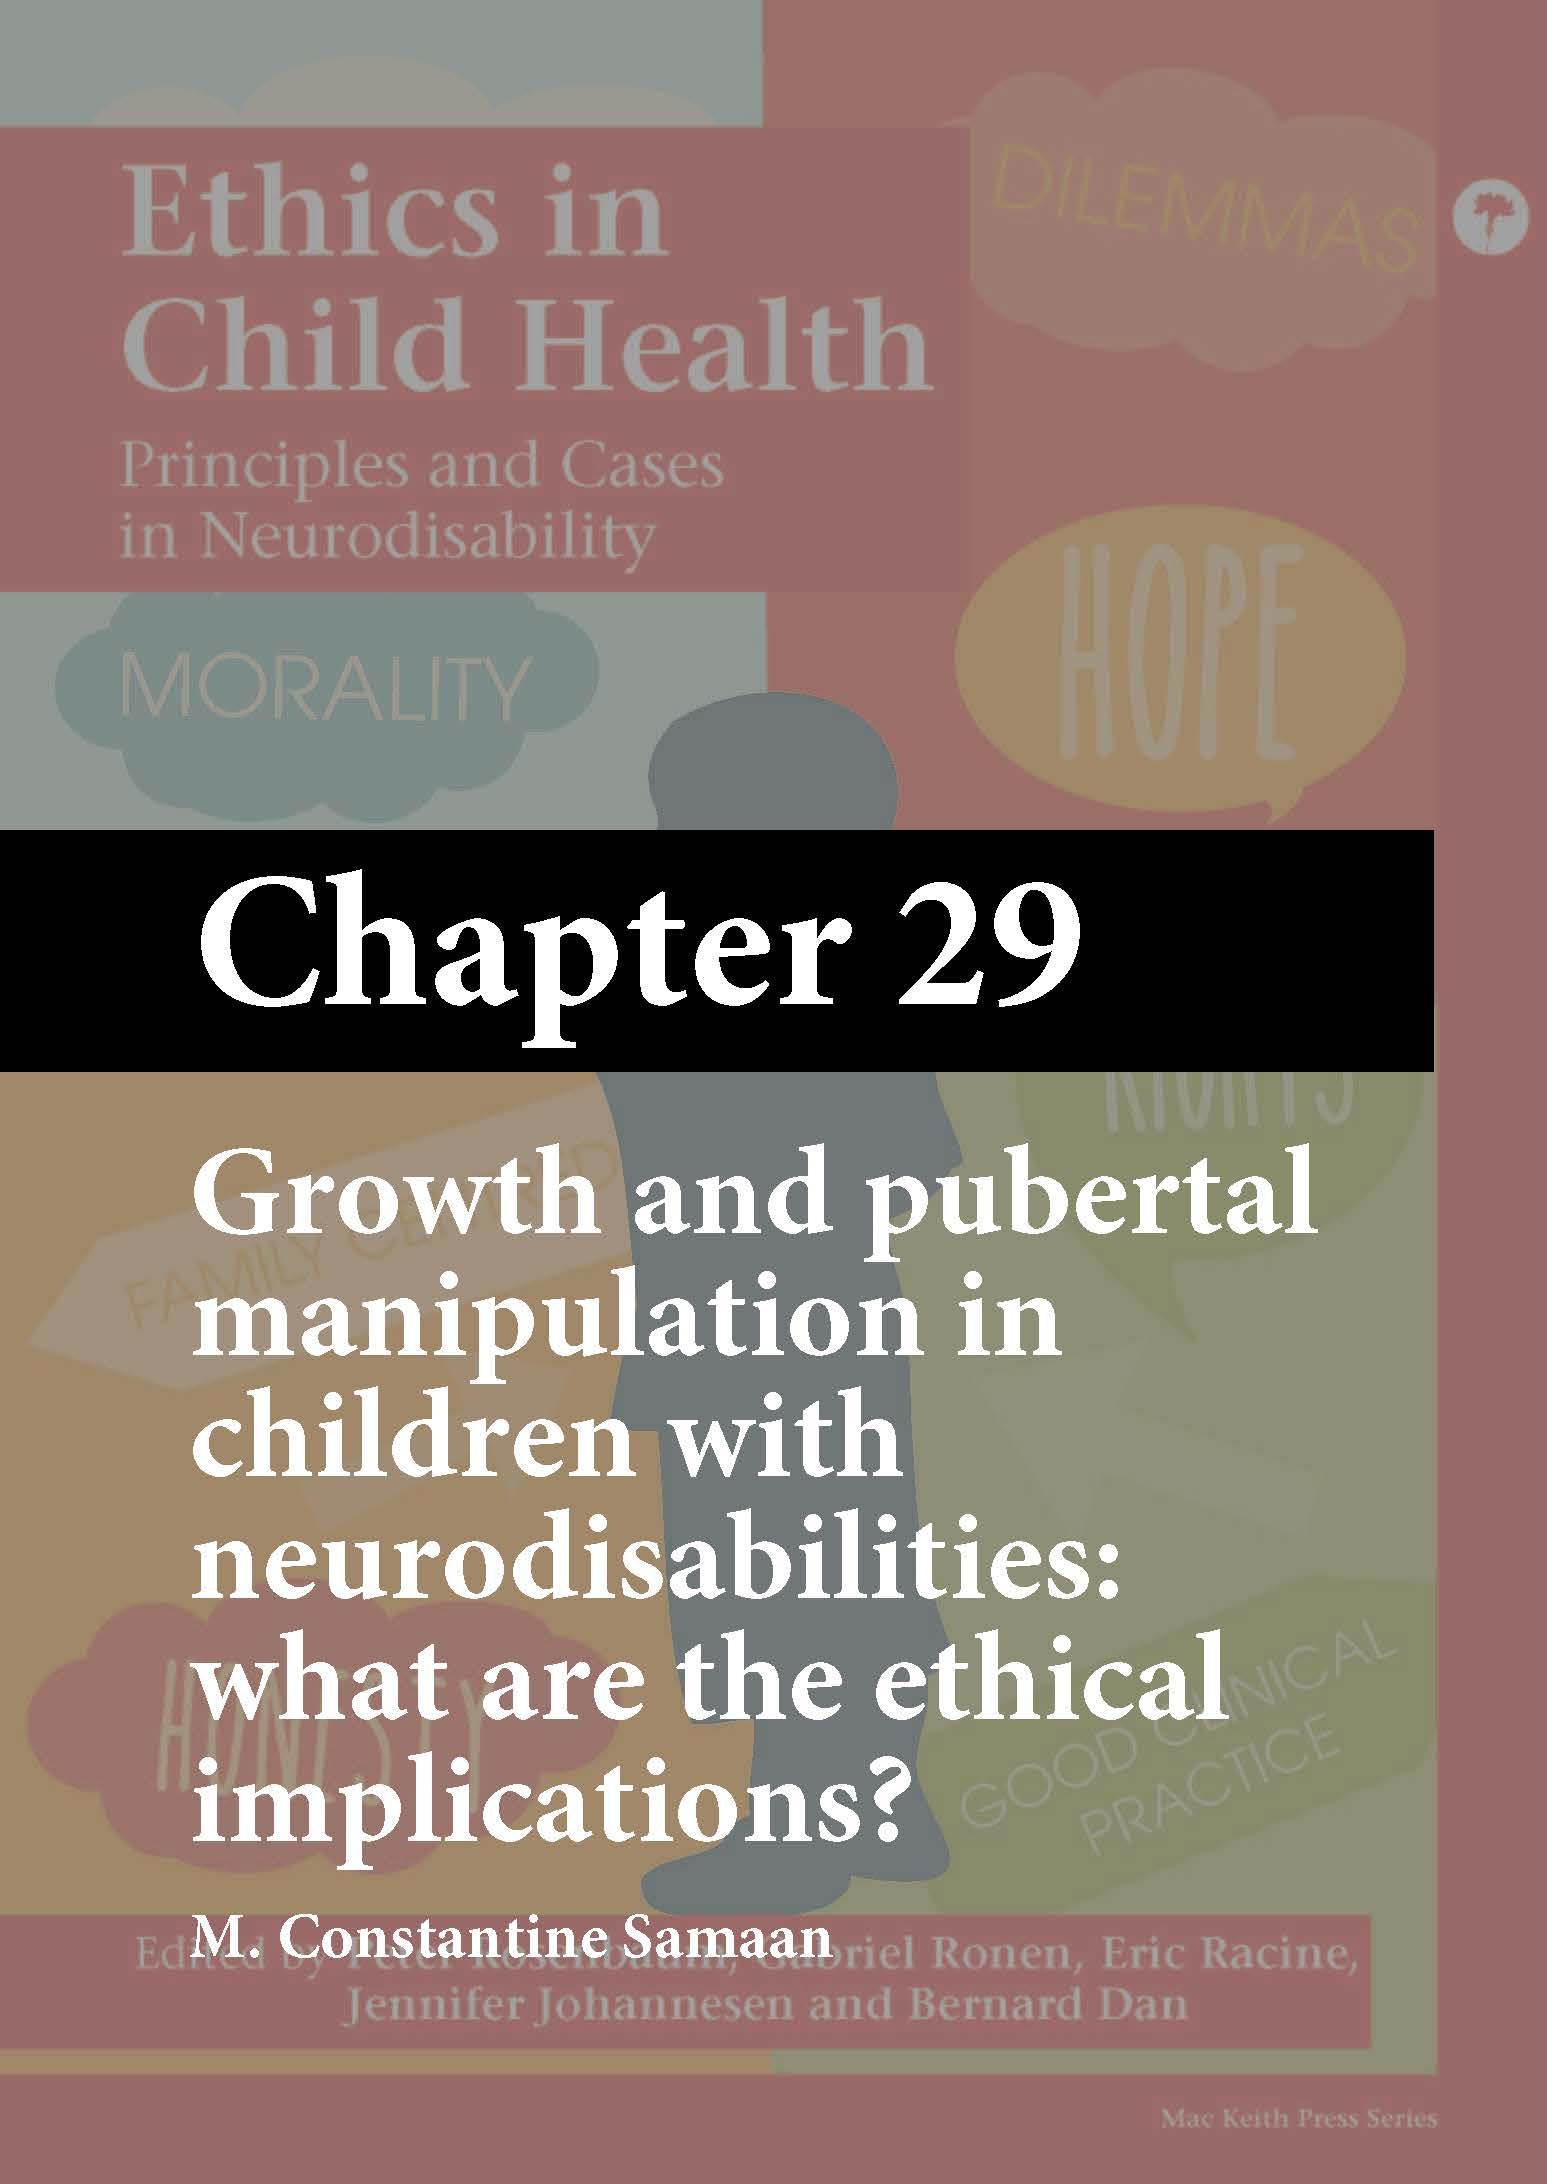 Ethics in Child Health, Rosenbaum, Chapter 29 cover